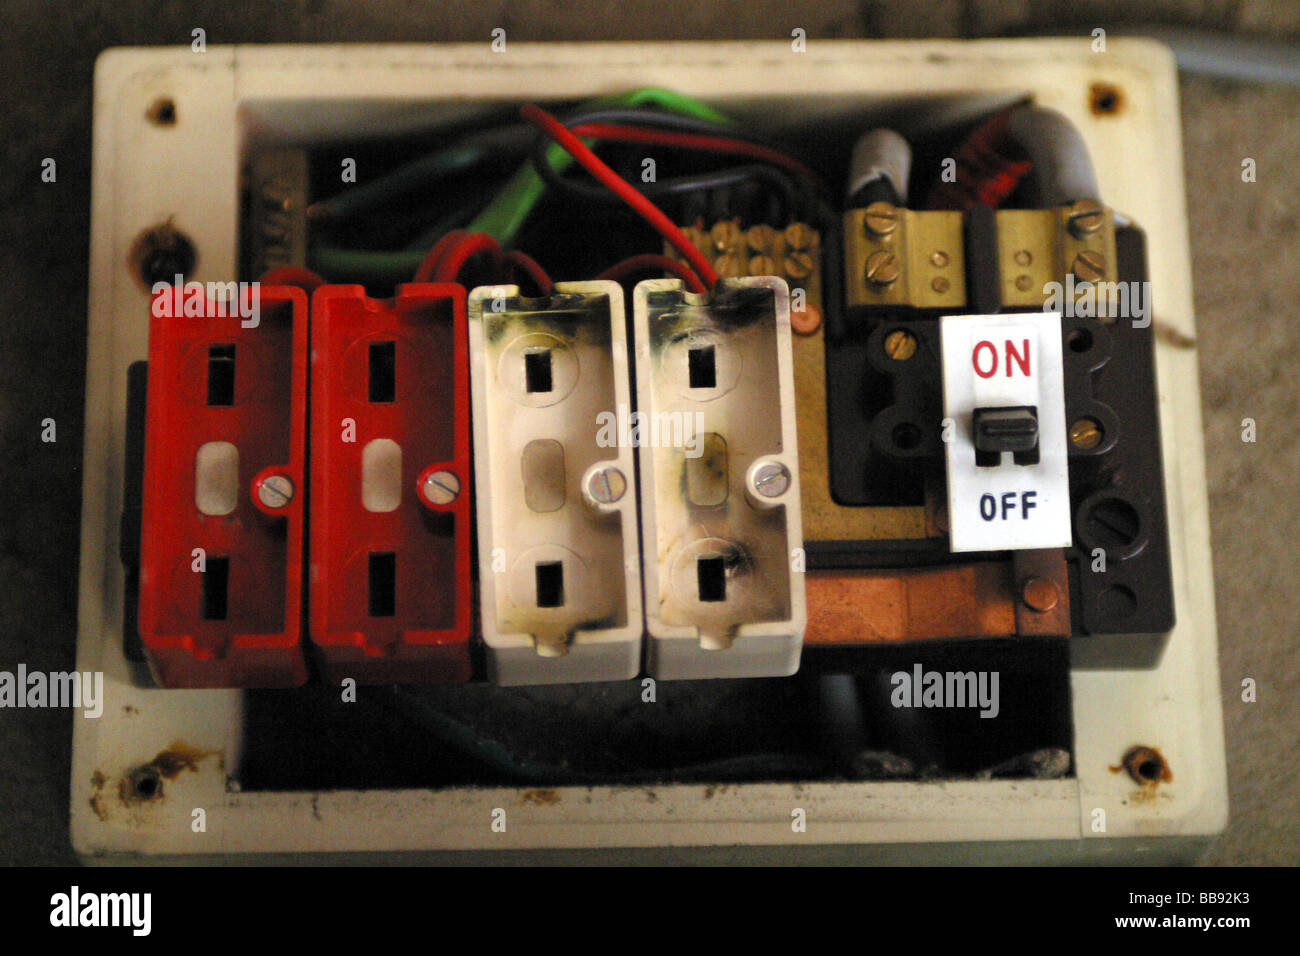 for a fuse box diagram for 2002 town car wiring a fuse box old style wire fuse box with no fuses installed stock ... #15